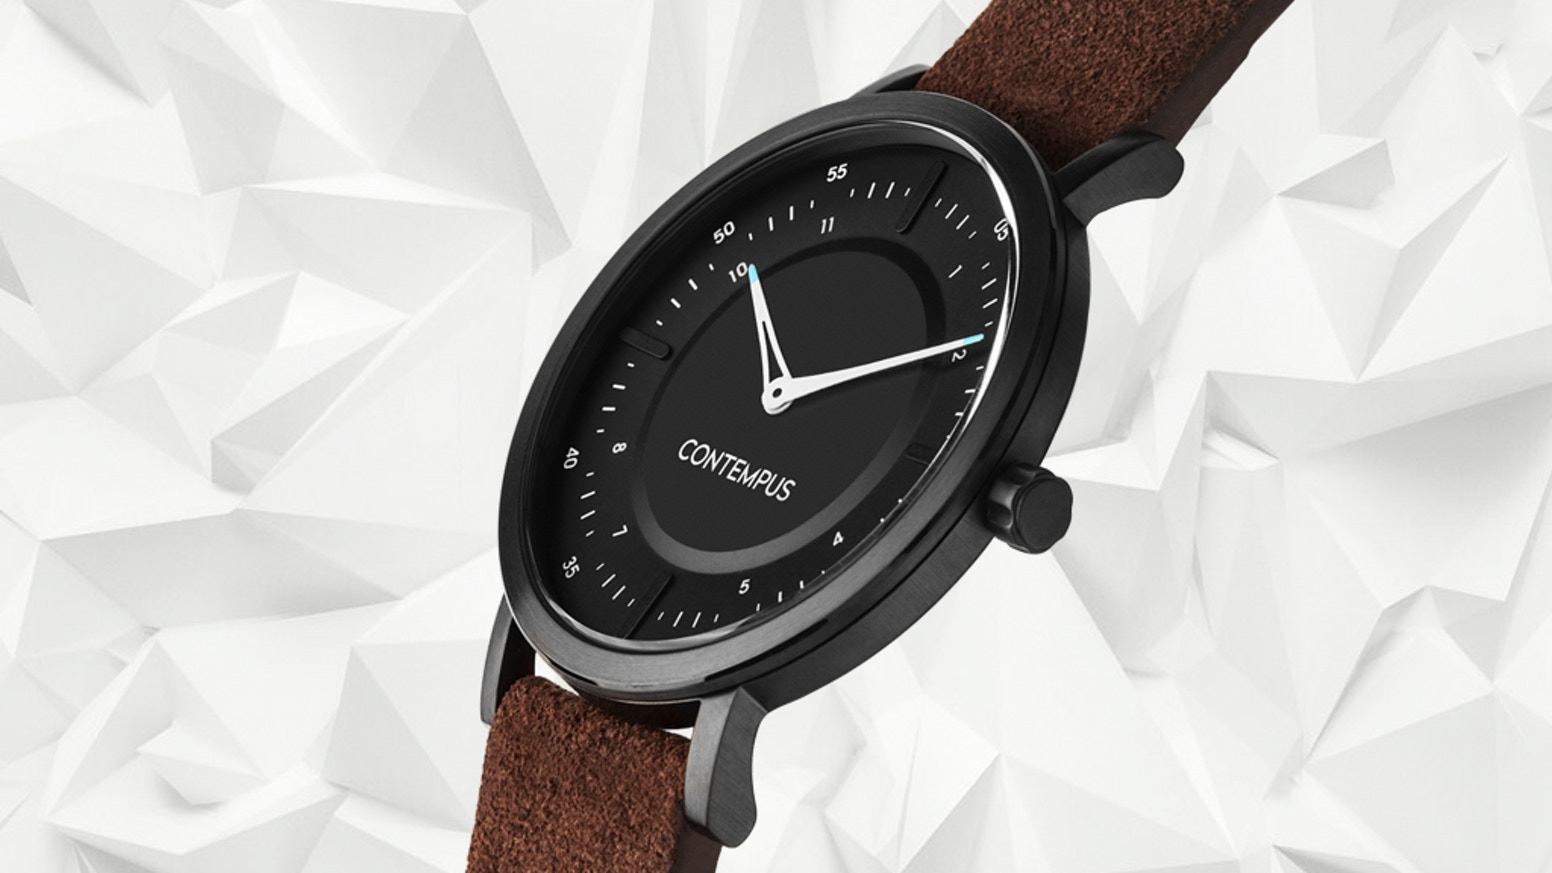 Don't get upset if you like our watches but couldn't claim any of it in time. Visit our website for great offers on CONTEMPUS!